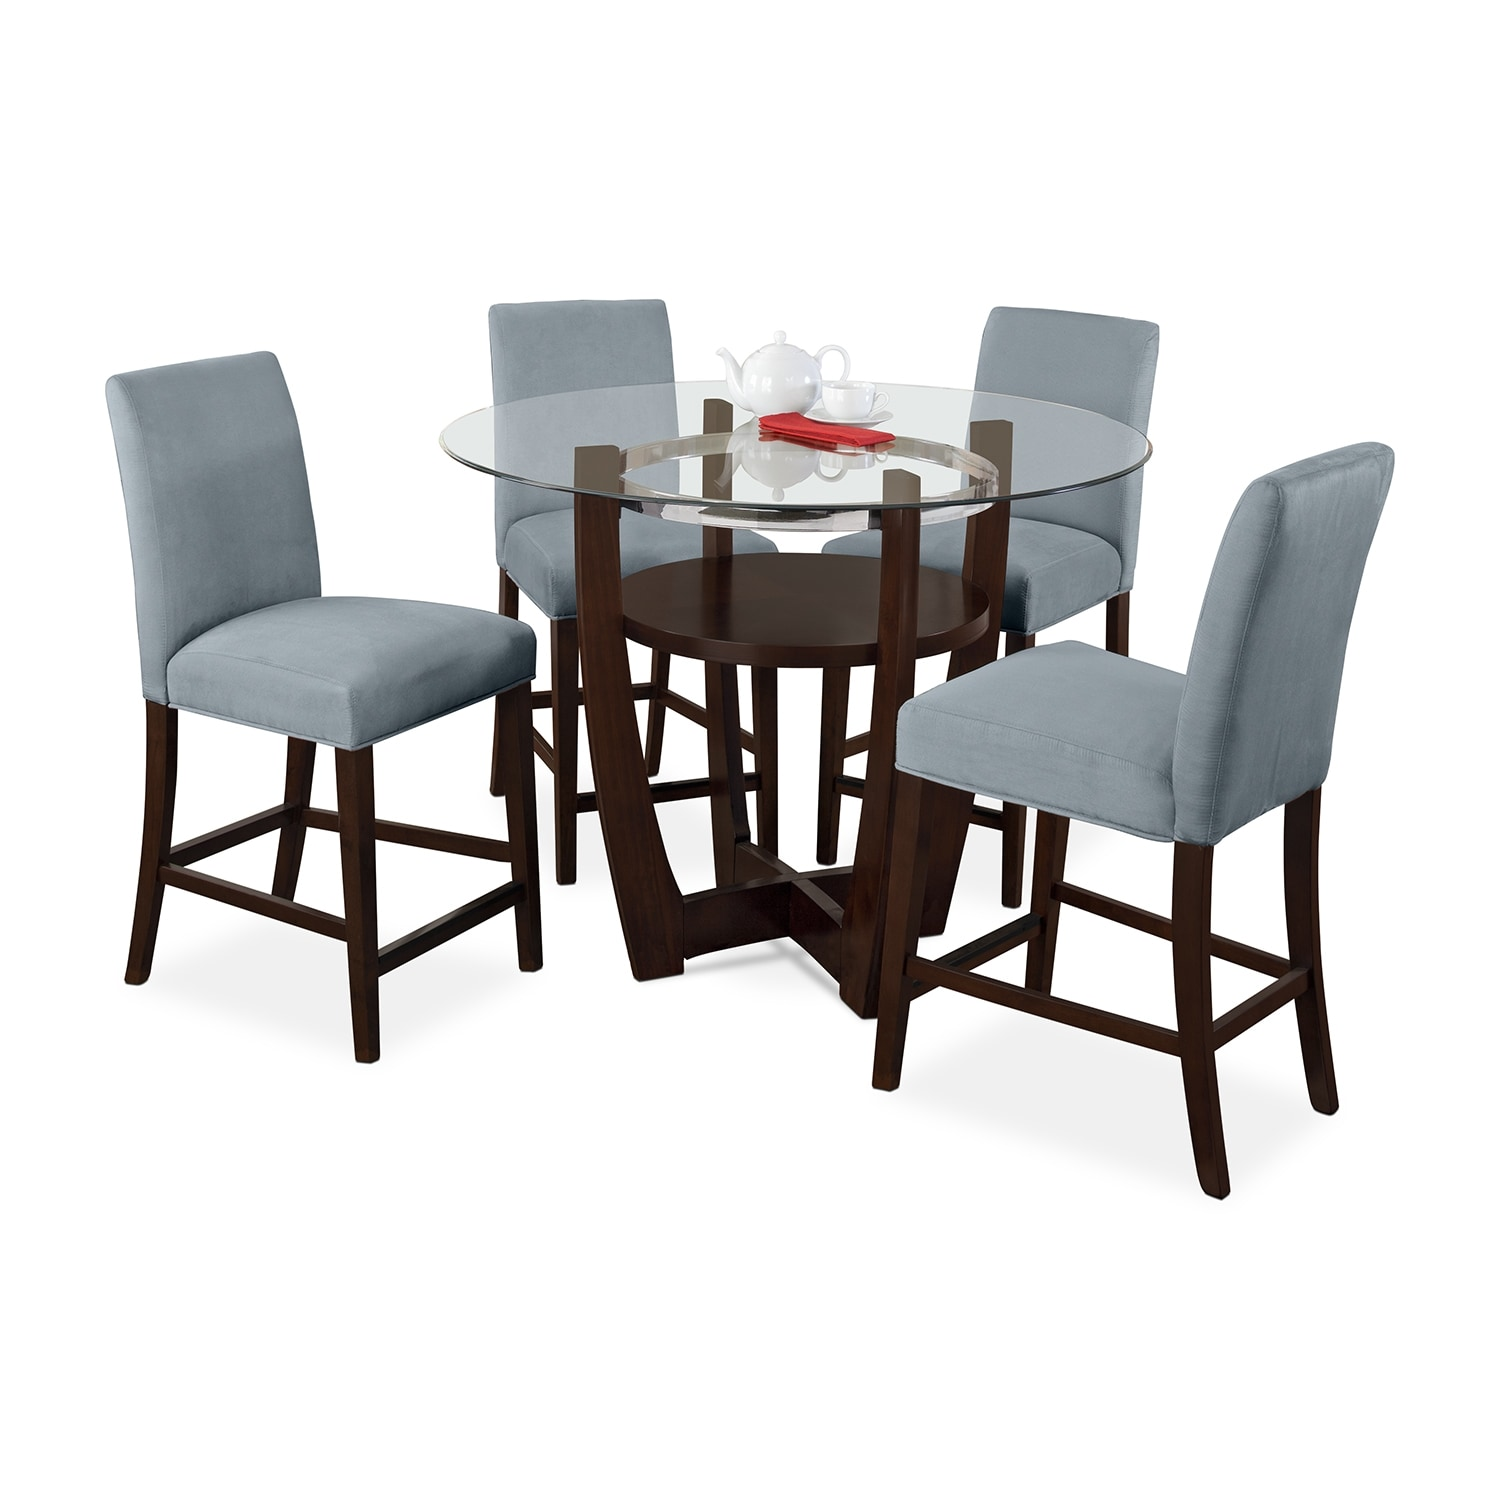 Aqua Dining Chairs Alcove Counter Height Dinette With 4 Side Chairs Aqua